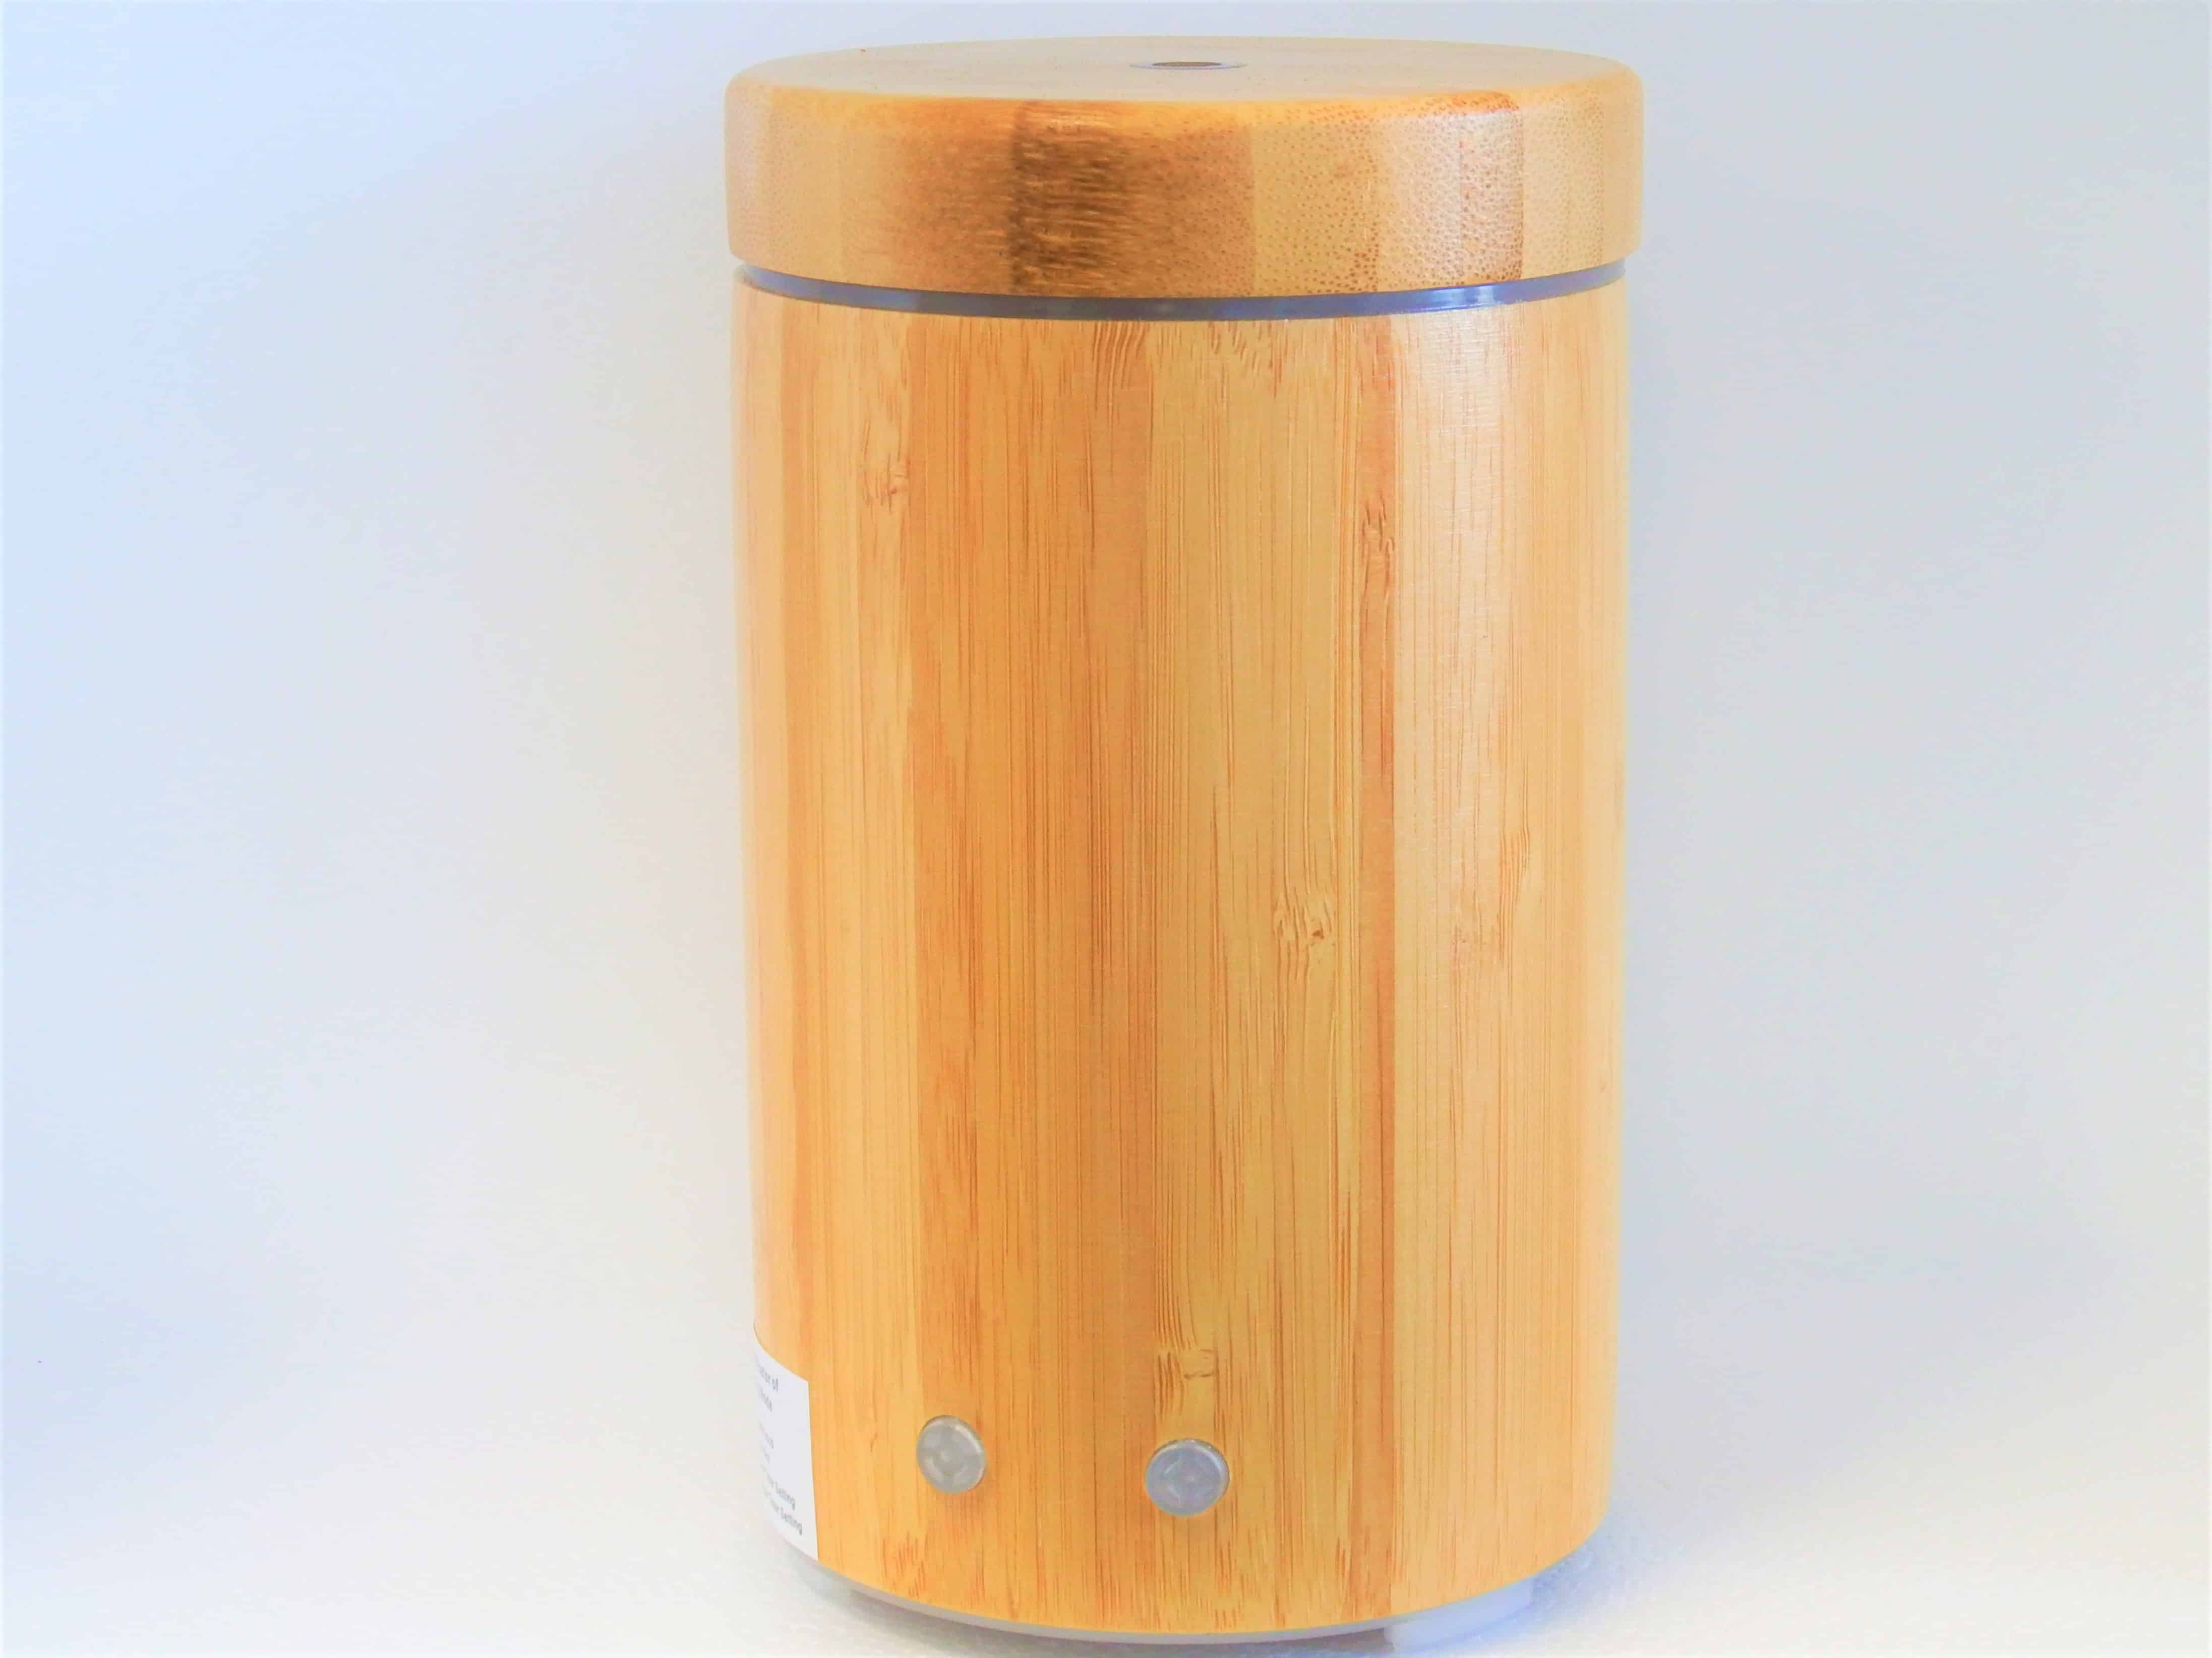 Electric Diffuser for Aromatherapy Oils